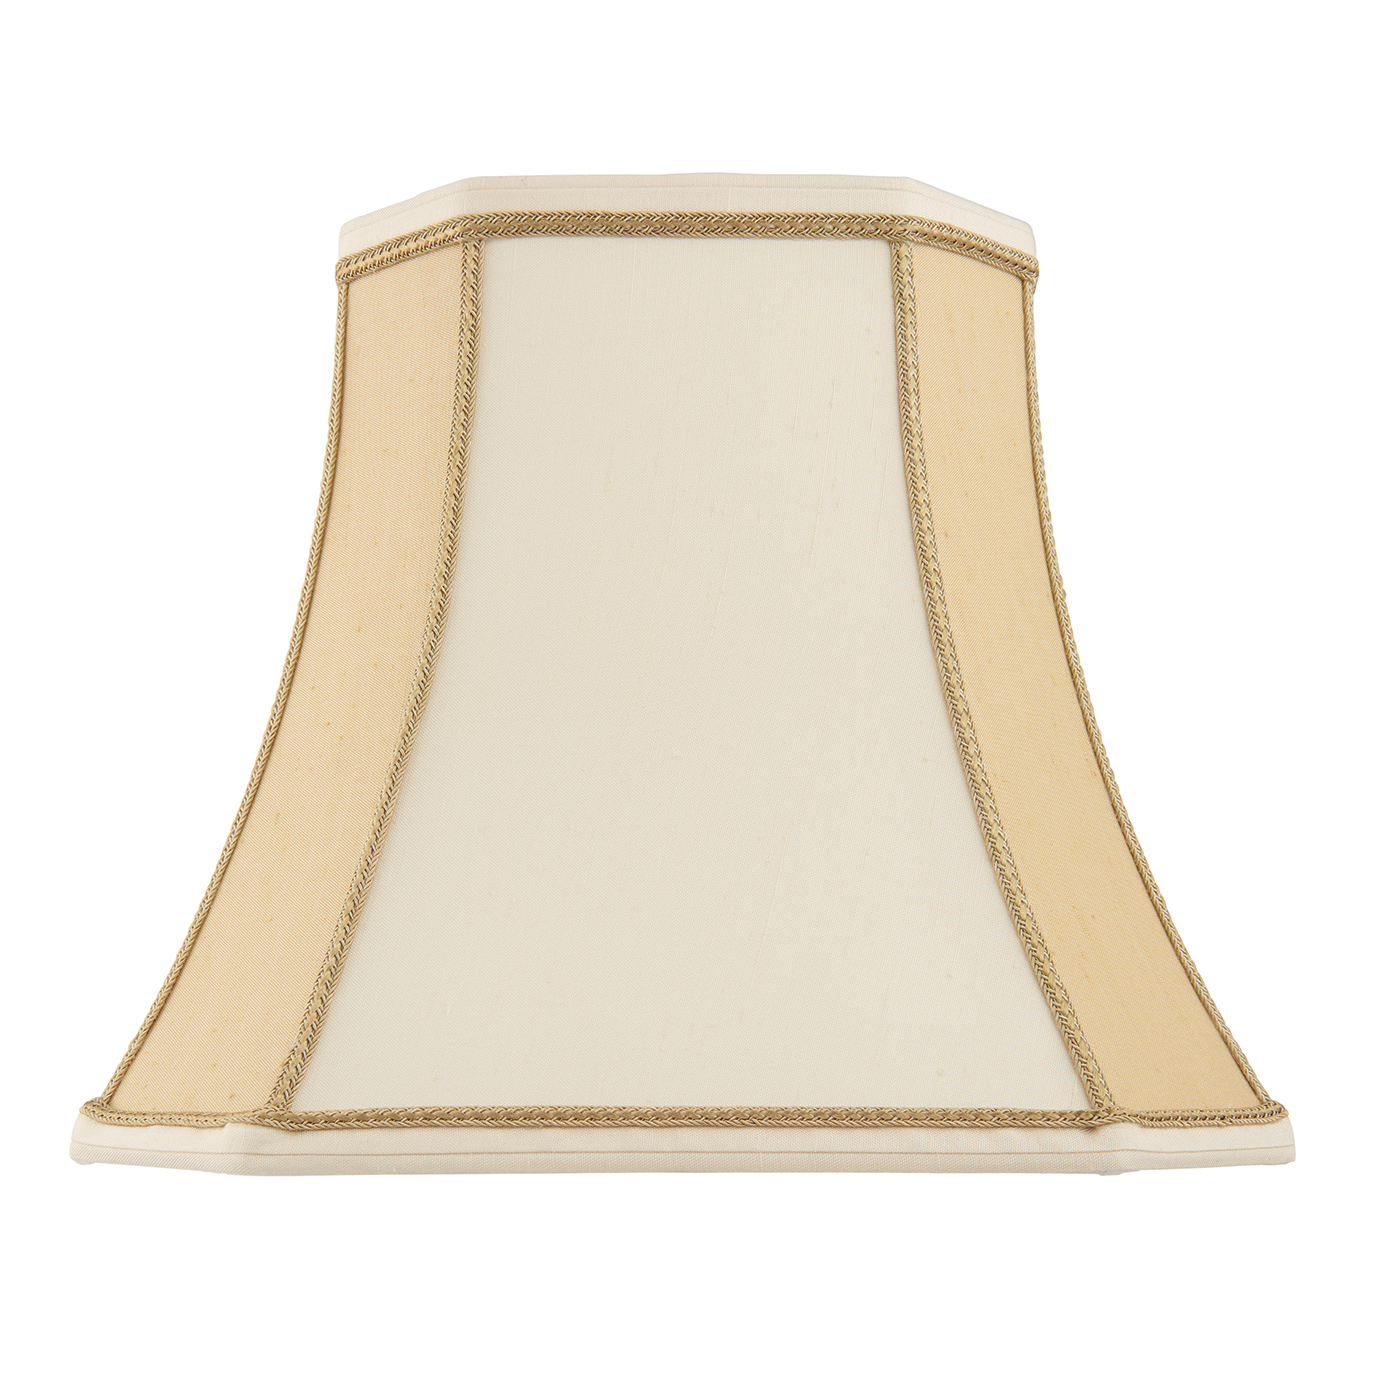 Endon Camilla lampshade 10 inch Two-tone cream faux silk 225mm H x 255mm D max. Thumbnail 1